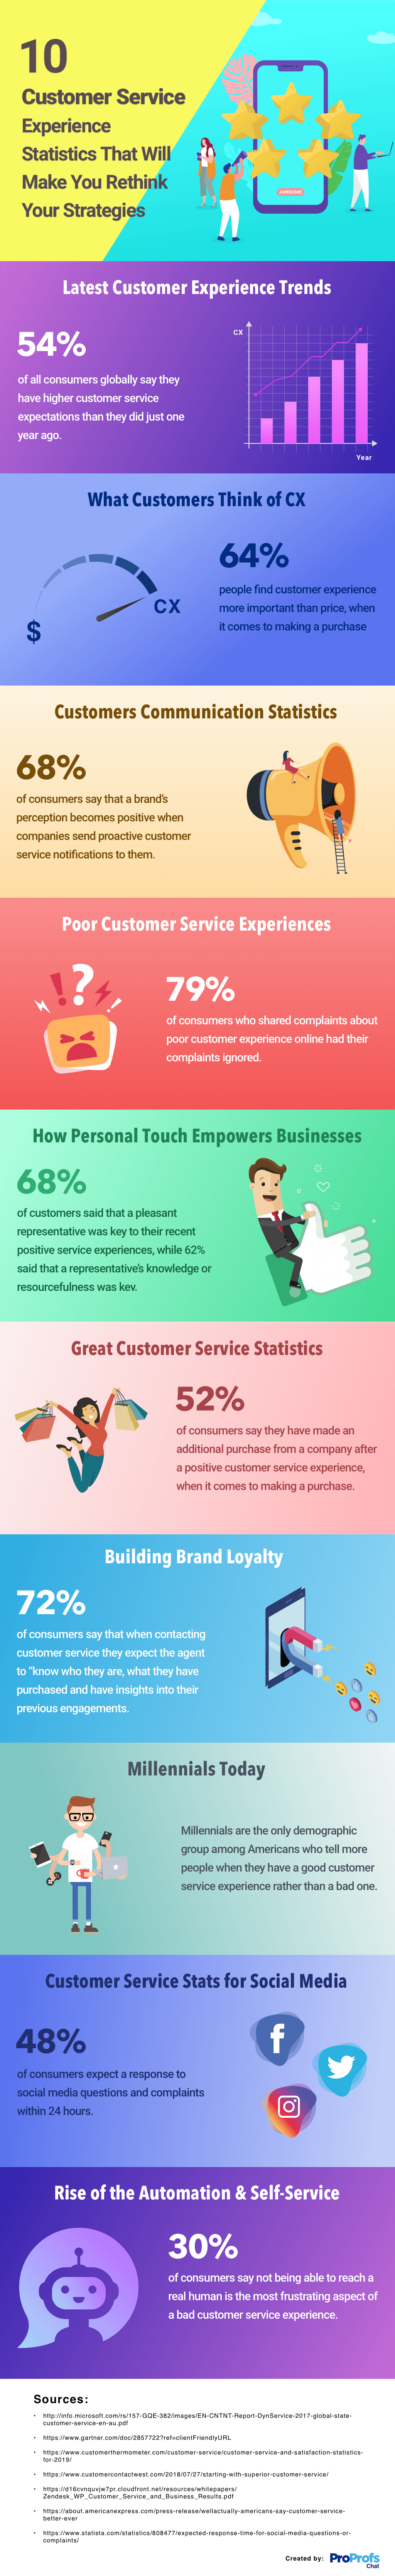 Customer Service Statistics & Facts